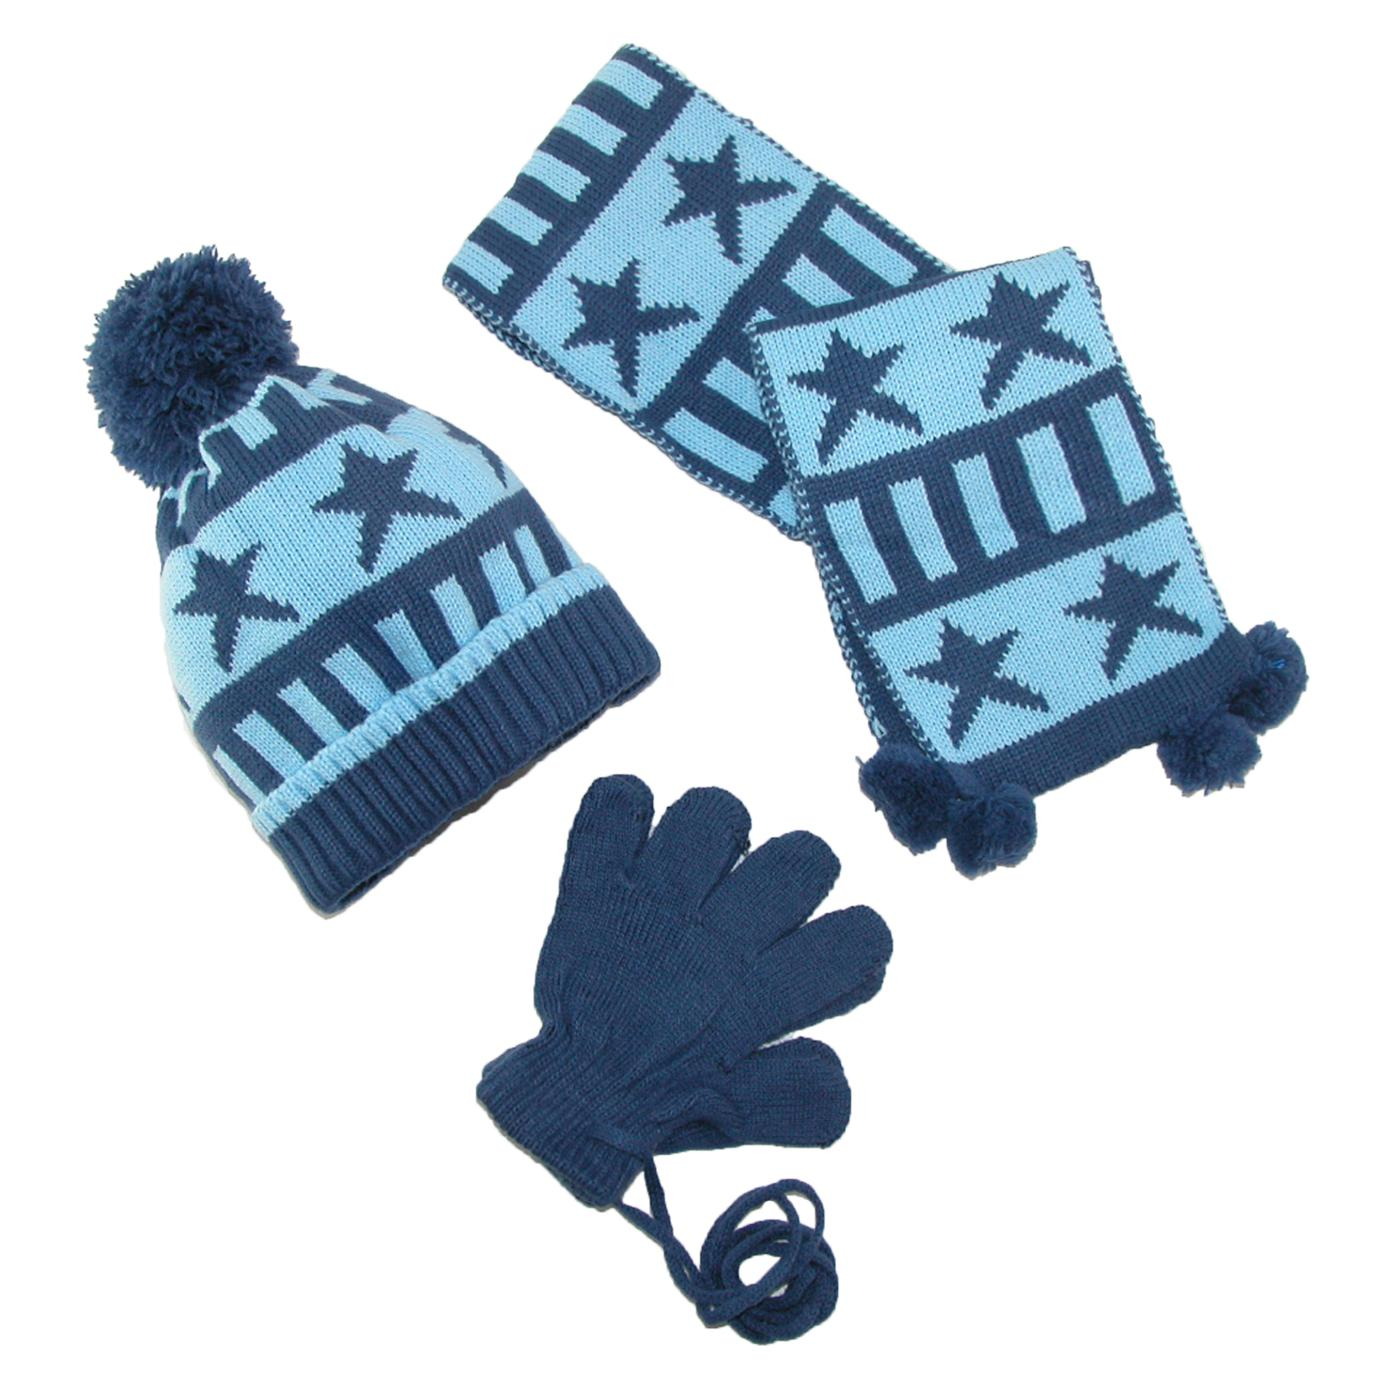 fdf33d2054e scarf-and-gloves-clipart-clipart-suggest-kids-scarves-and-hats -l-289c6cf926574c1e